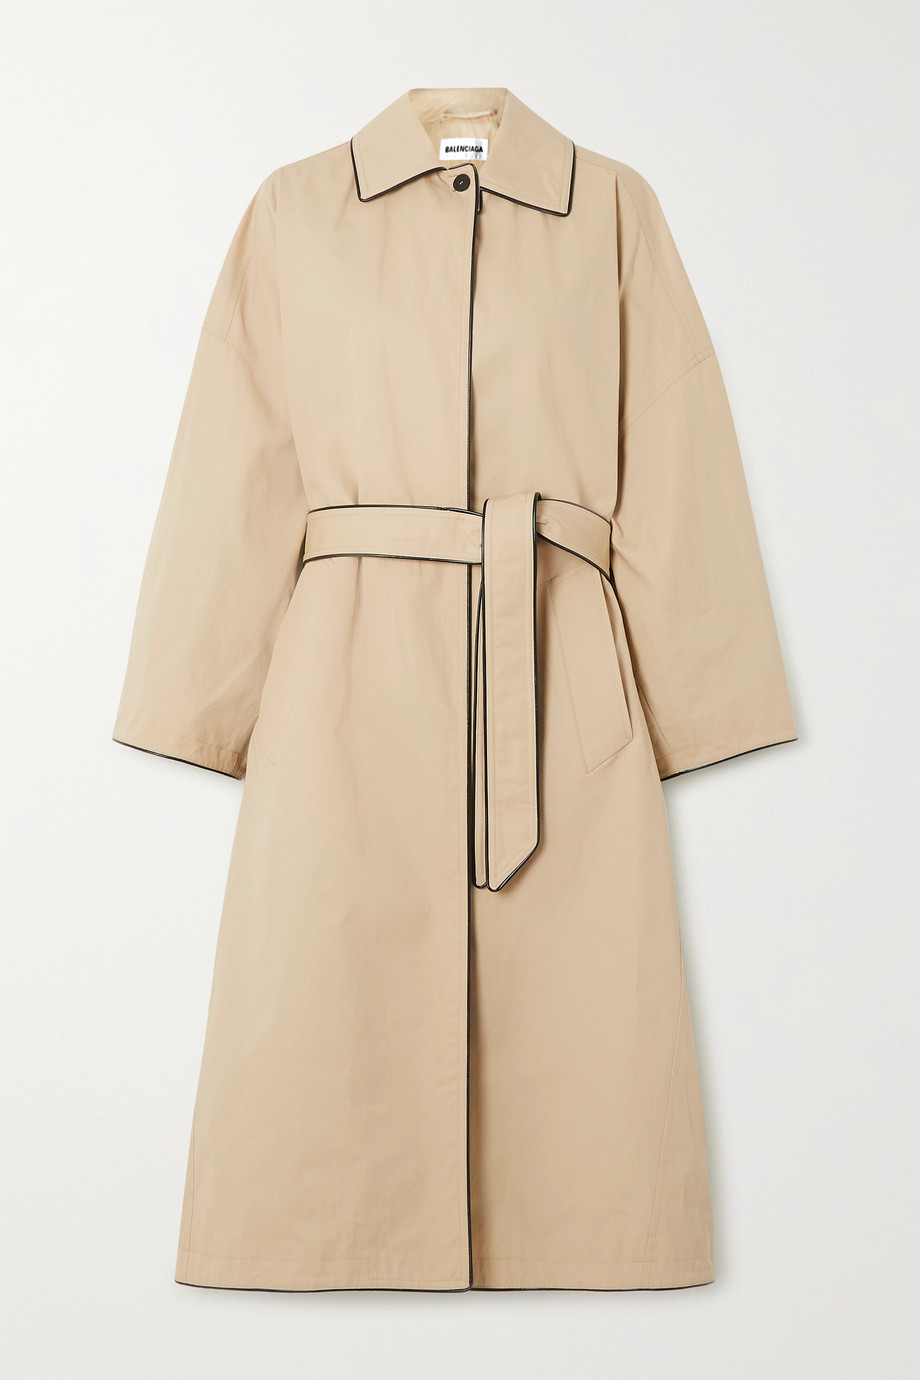 BALENCIAGA Faux leather-trimmed cotton-gabardine trench coat